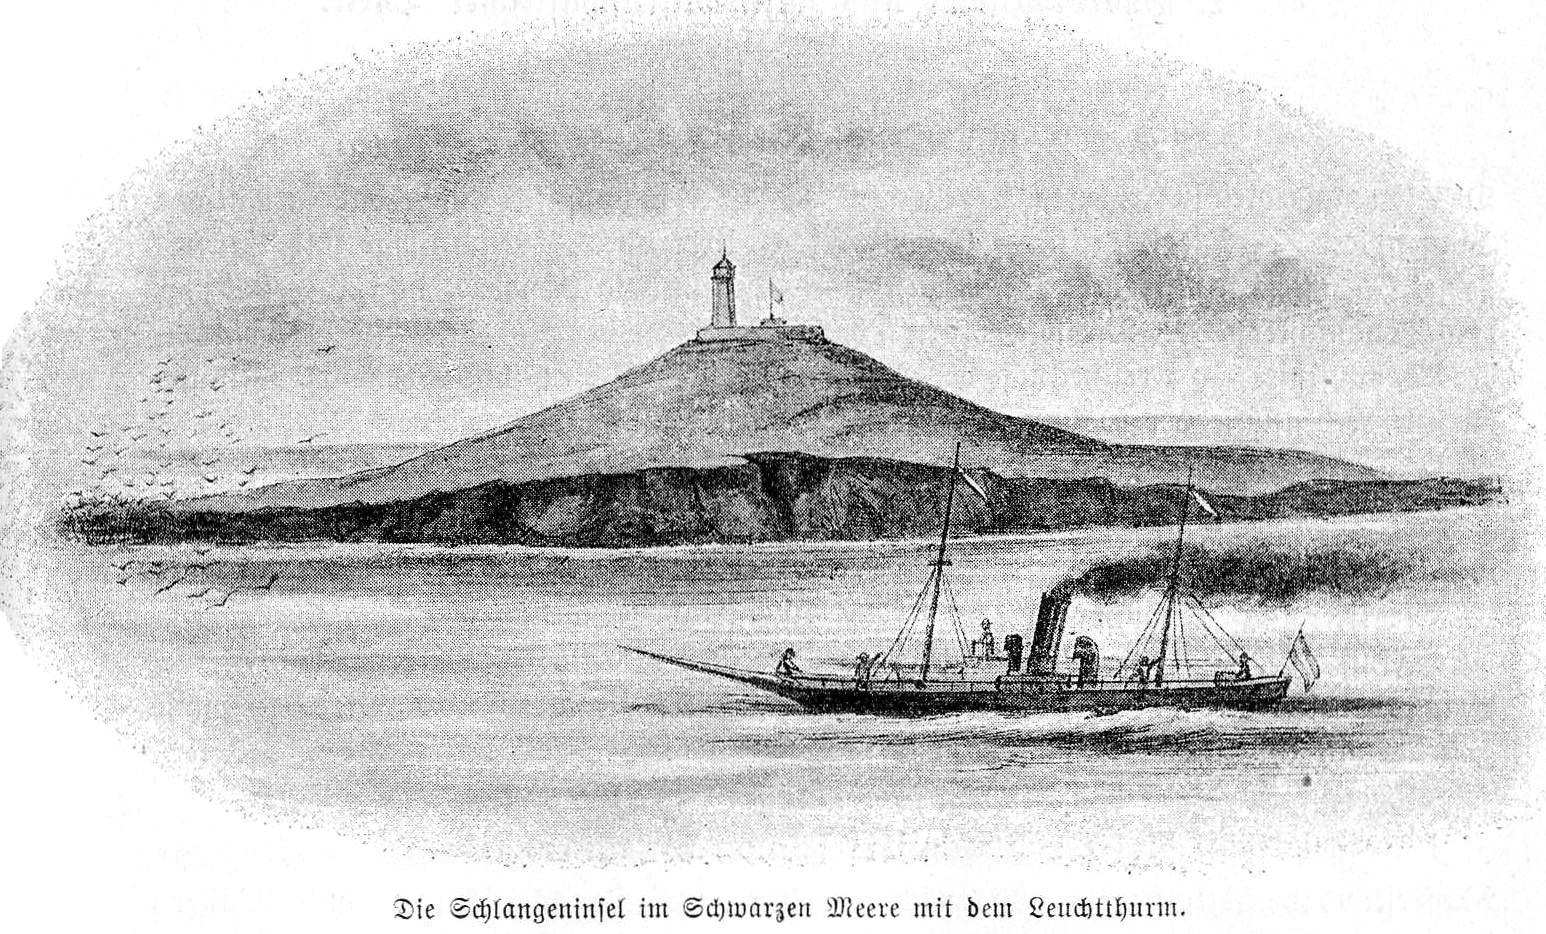 http://upload.wikimedia.org/wikipedia/commons/c/c5/Insula_Serpilor_in_1896.JPG?uselang=ru